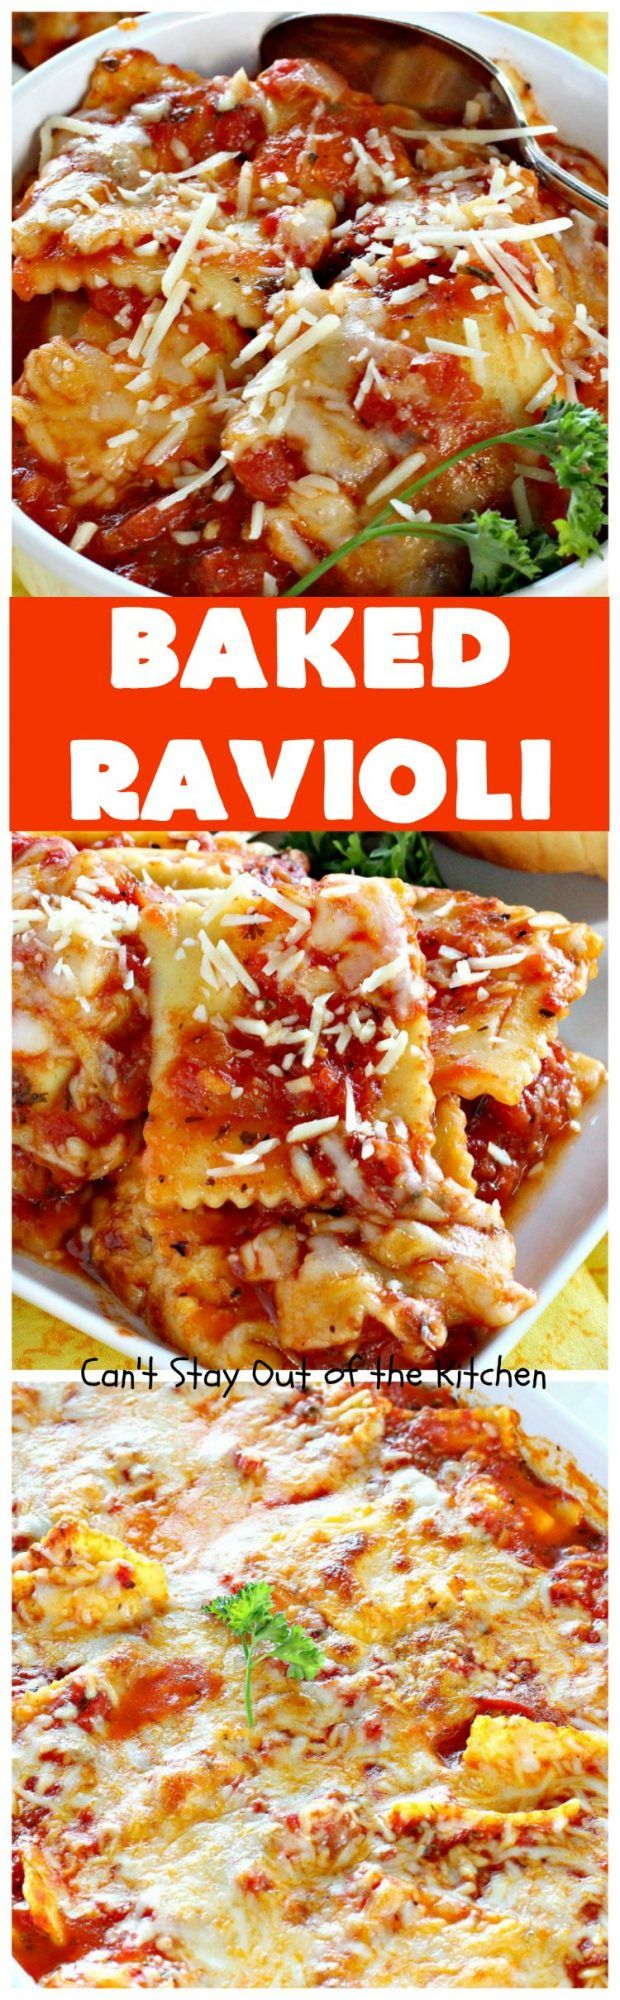 Baked Ravioli | Can't Stay Out of the Kitchen | fabulous #MarthaStewart inspiration that's kid-friendly & delicious. Perfect #pasta for #MeatlessMondays. #cheese #ravioli